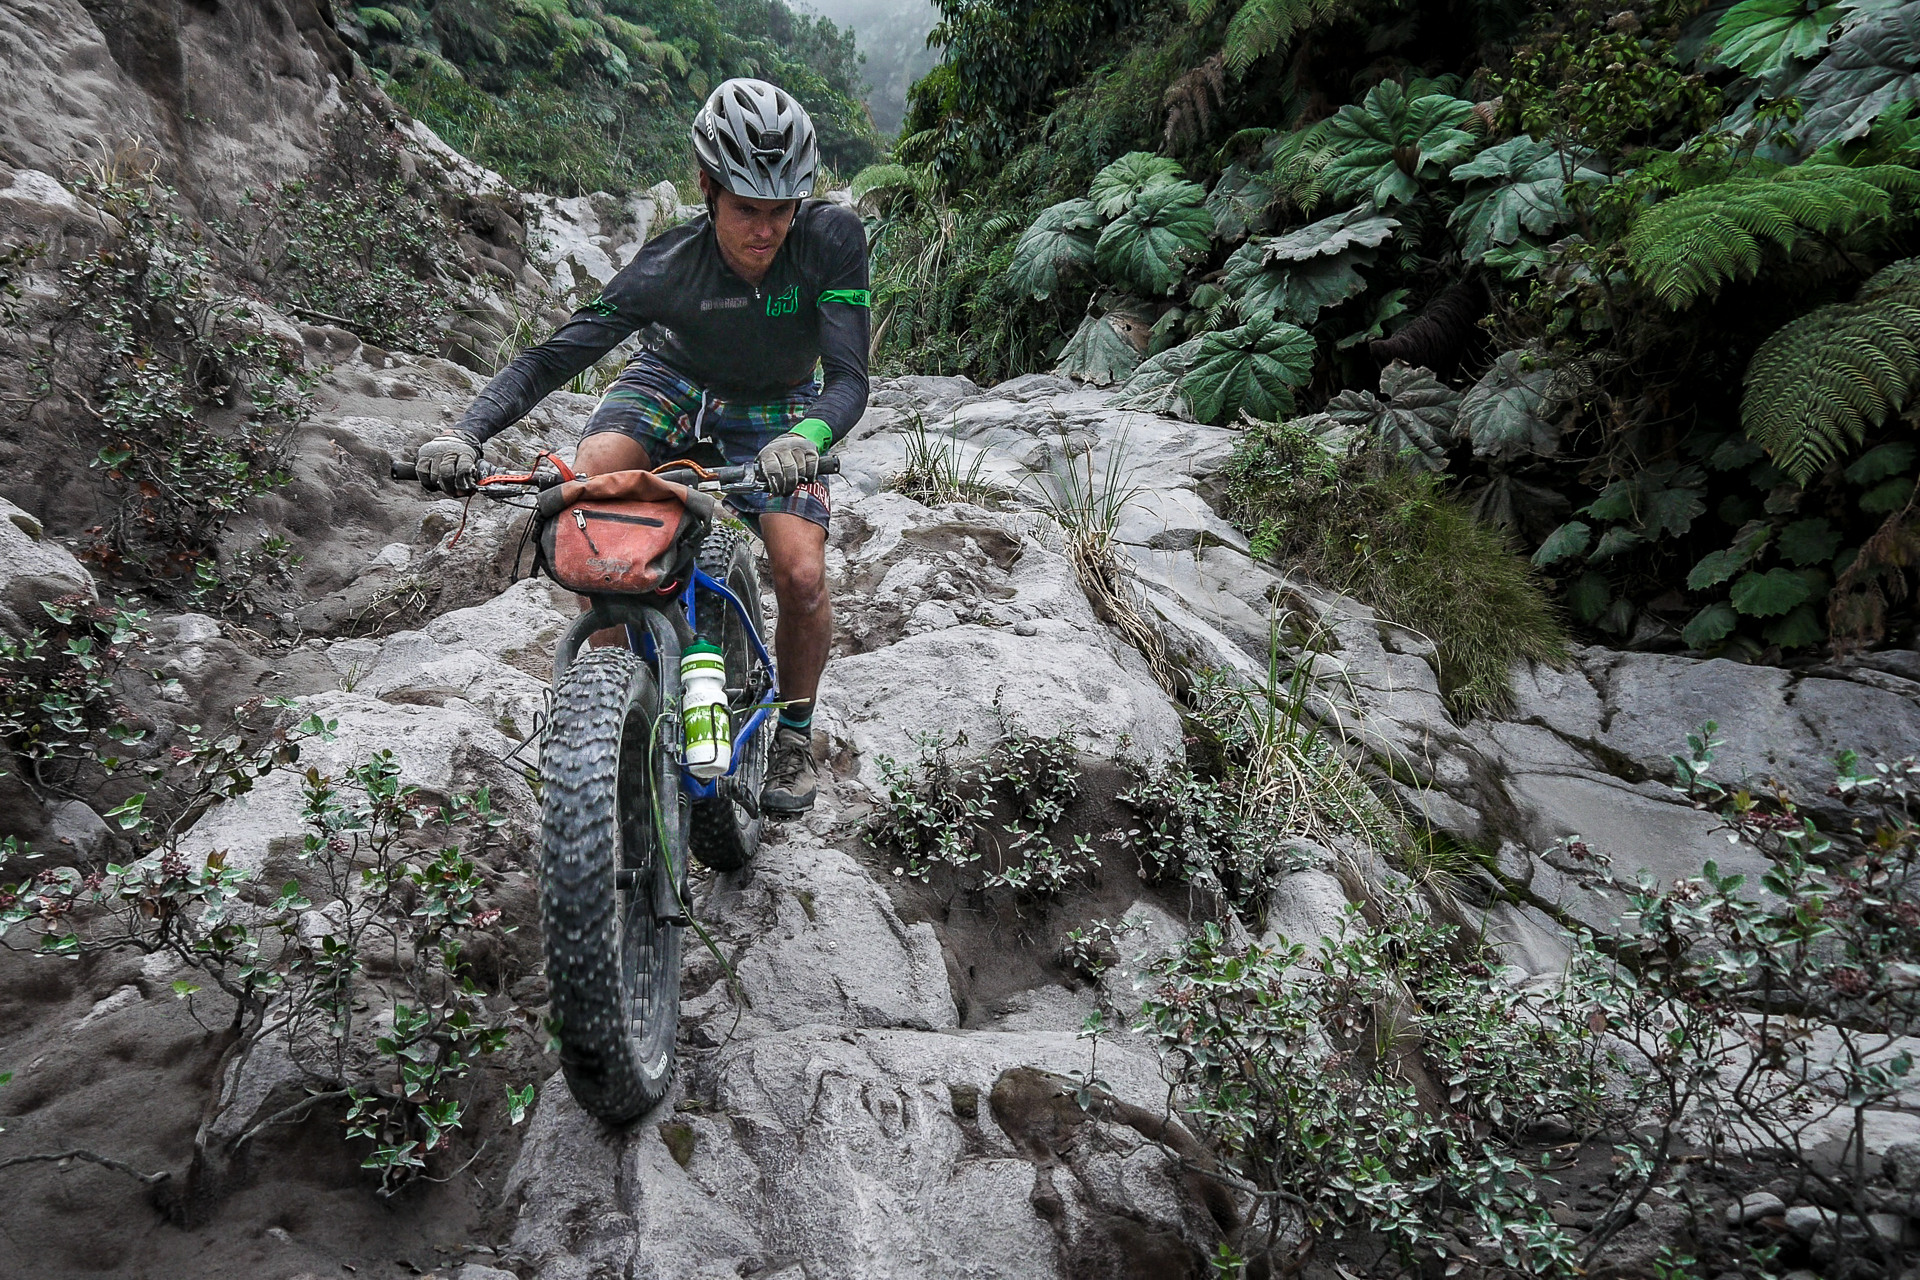 Brendan dodging holes and riding ridges on the slick, ash-covered dry lava flow en route to Volcán Santiaguito one of guatemala's hardest volcanos to reach.  Rider: Elizabeth Sampy Location: Volcán Santiaguito, Quetzaltenango, Guatemala